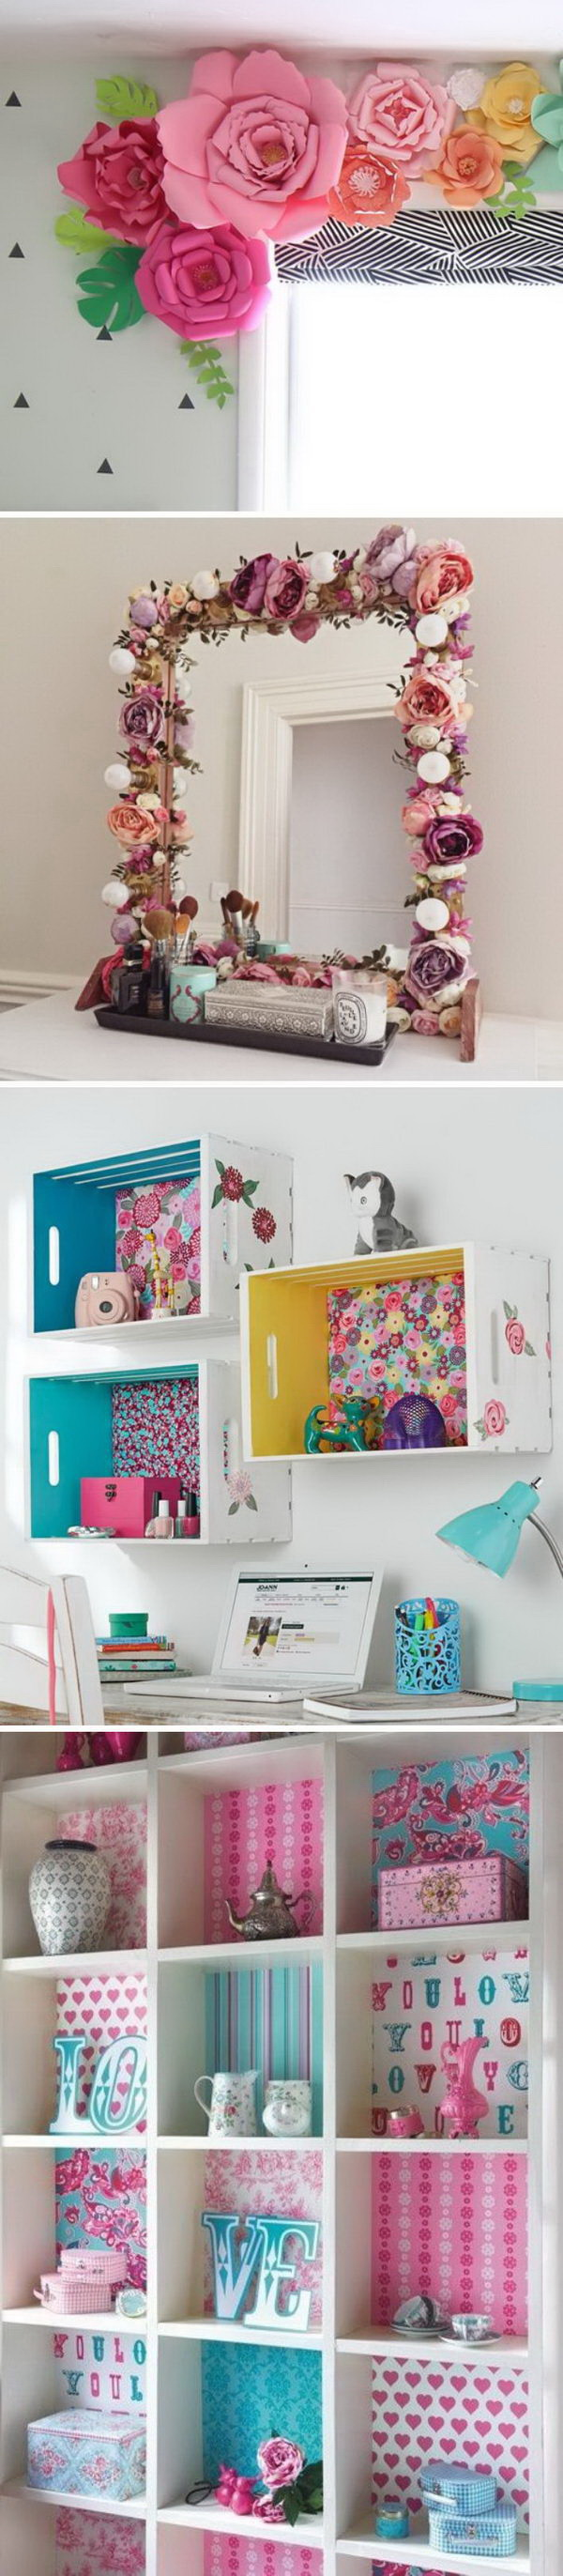 Awesome DIY Projects To Decorate A Girl's Bedroom.